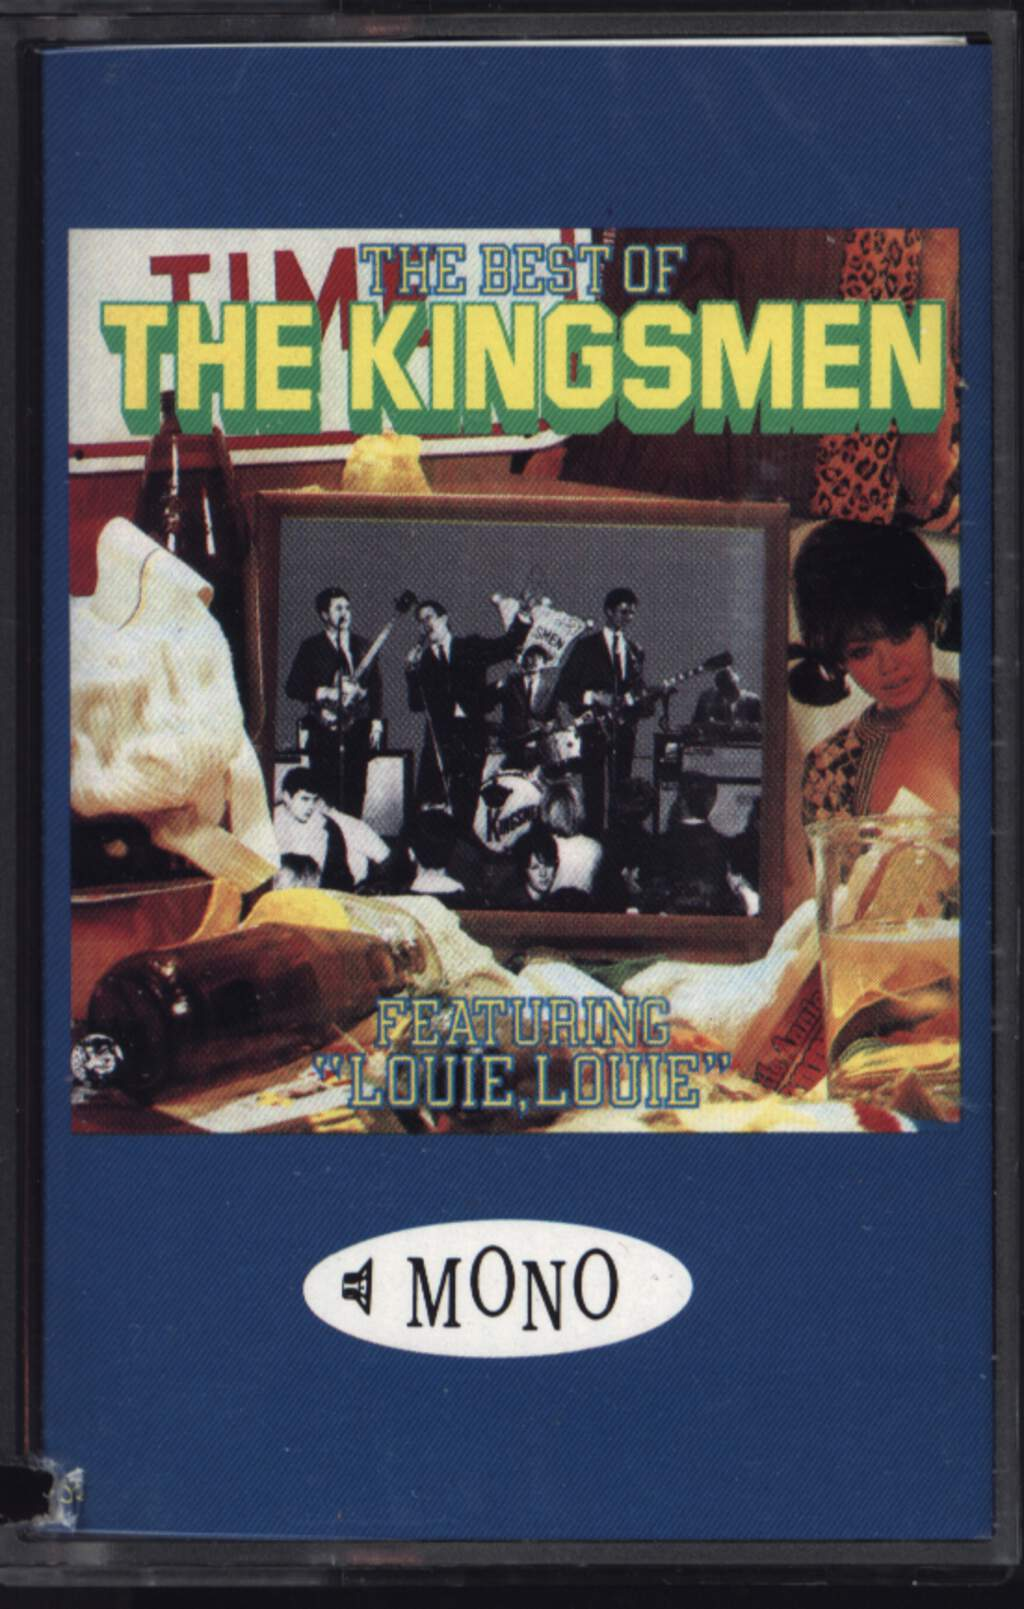 The Kingsmen: The Best Of The Kingsmen, Compact Cassette